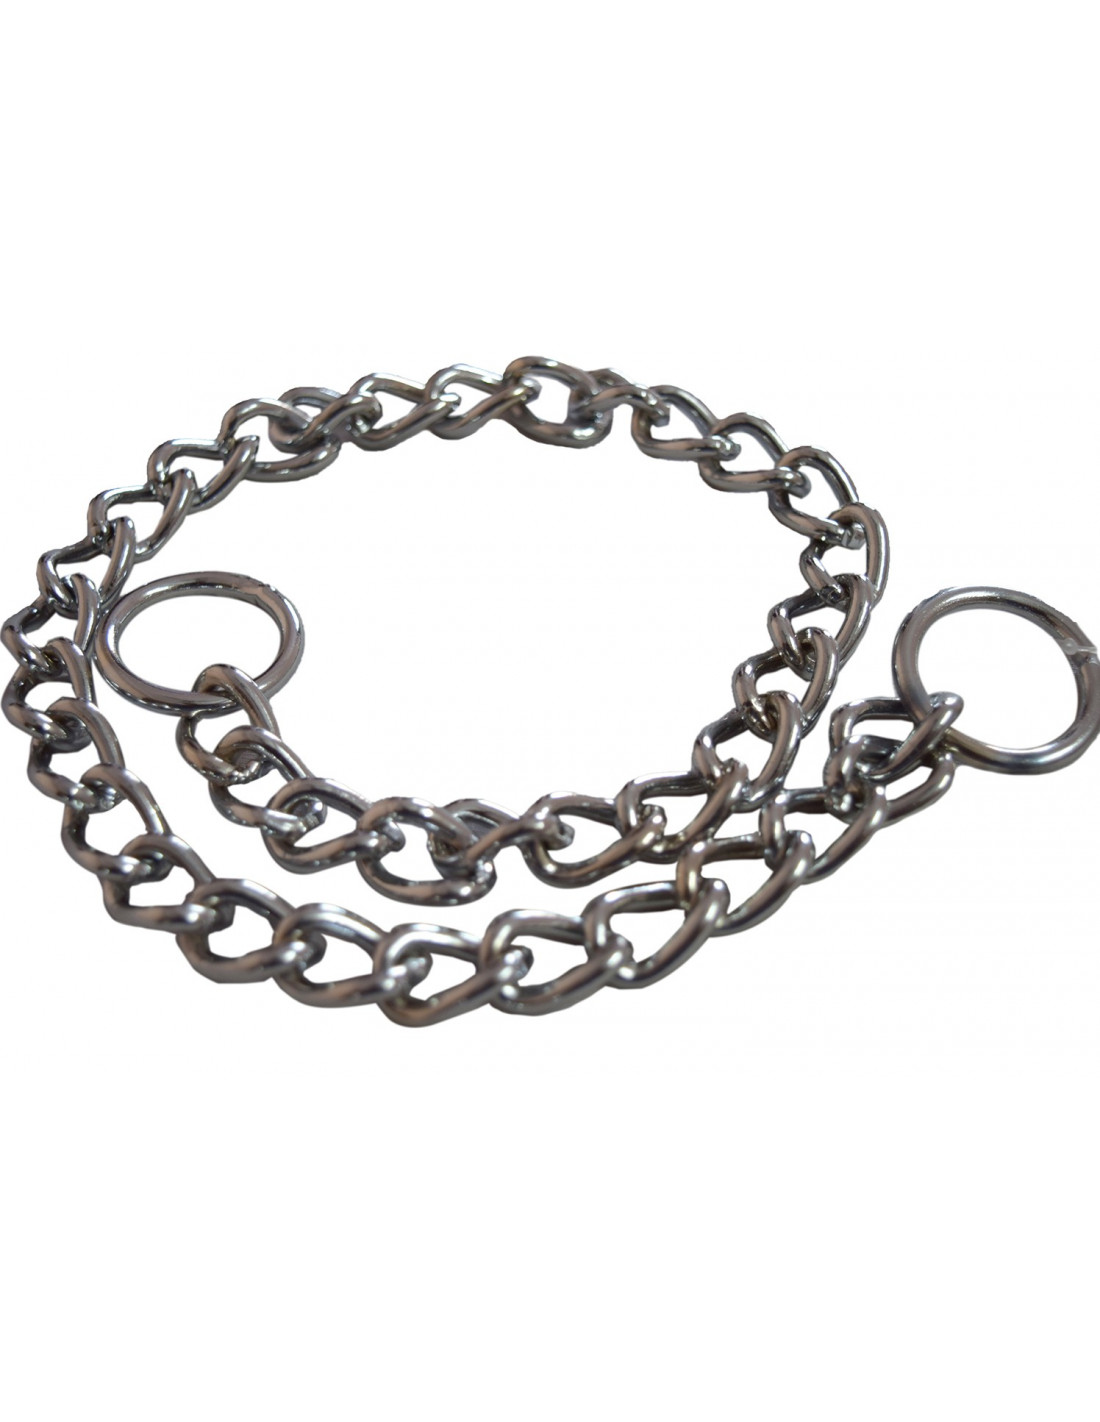 Pawzone Collar Chain For Pets Size S